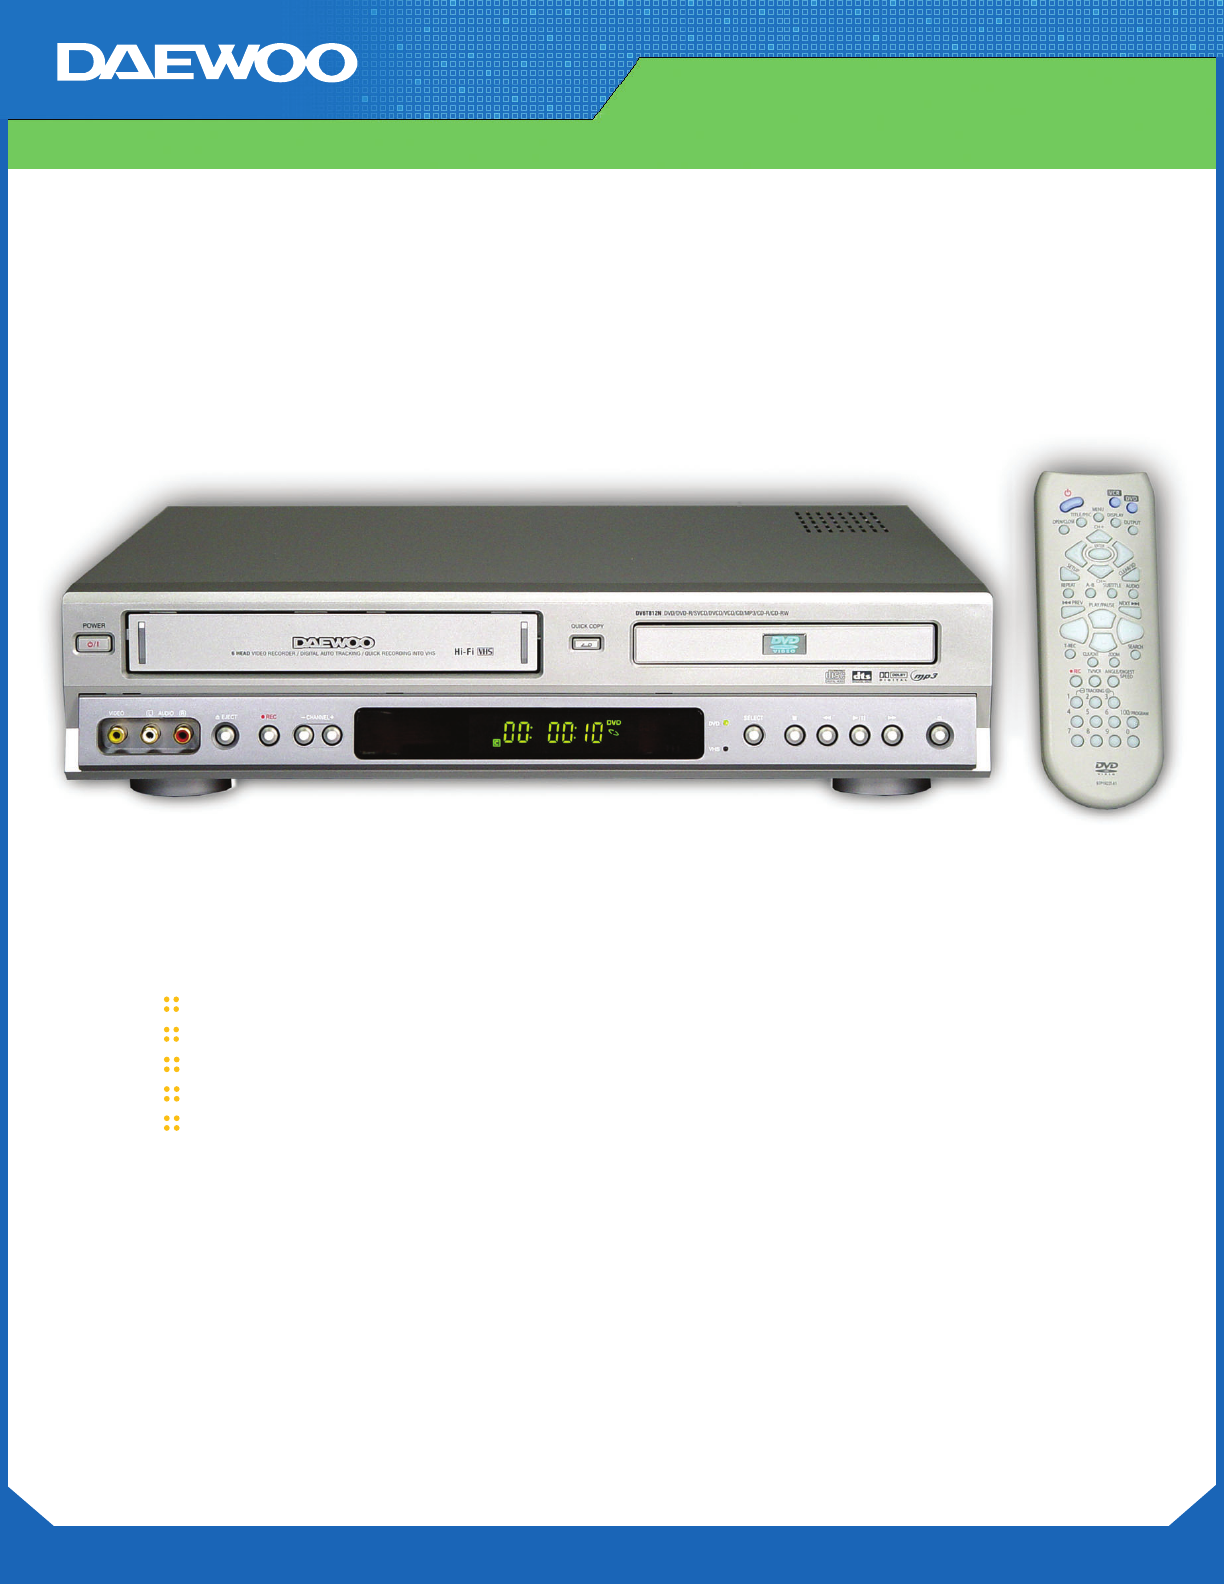 daewoo dvd vcr combo dv 6t812n user guide manualsonline com rh tv manualsonline com New VHS VCR Players daewoo vcr dvd combo manual